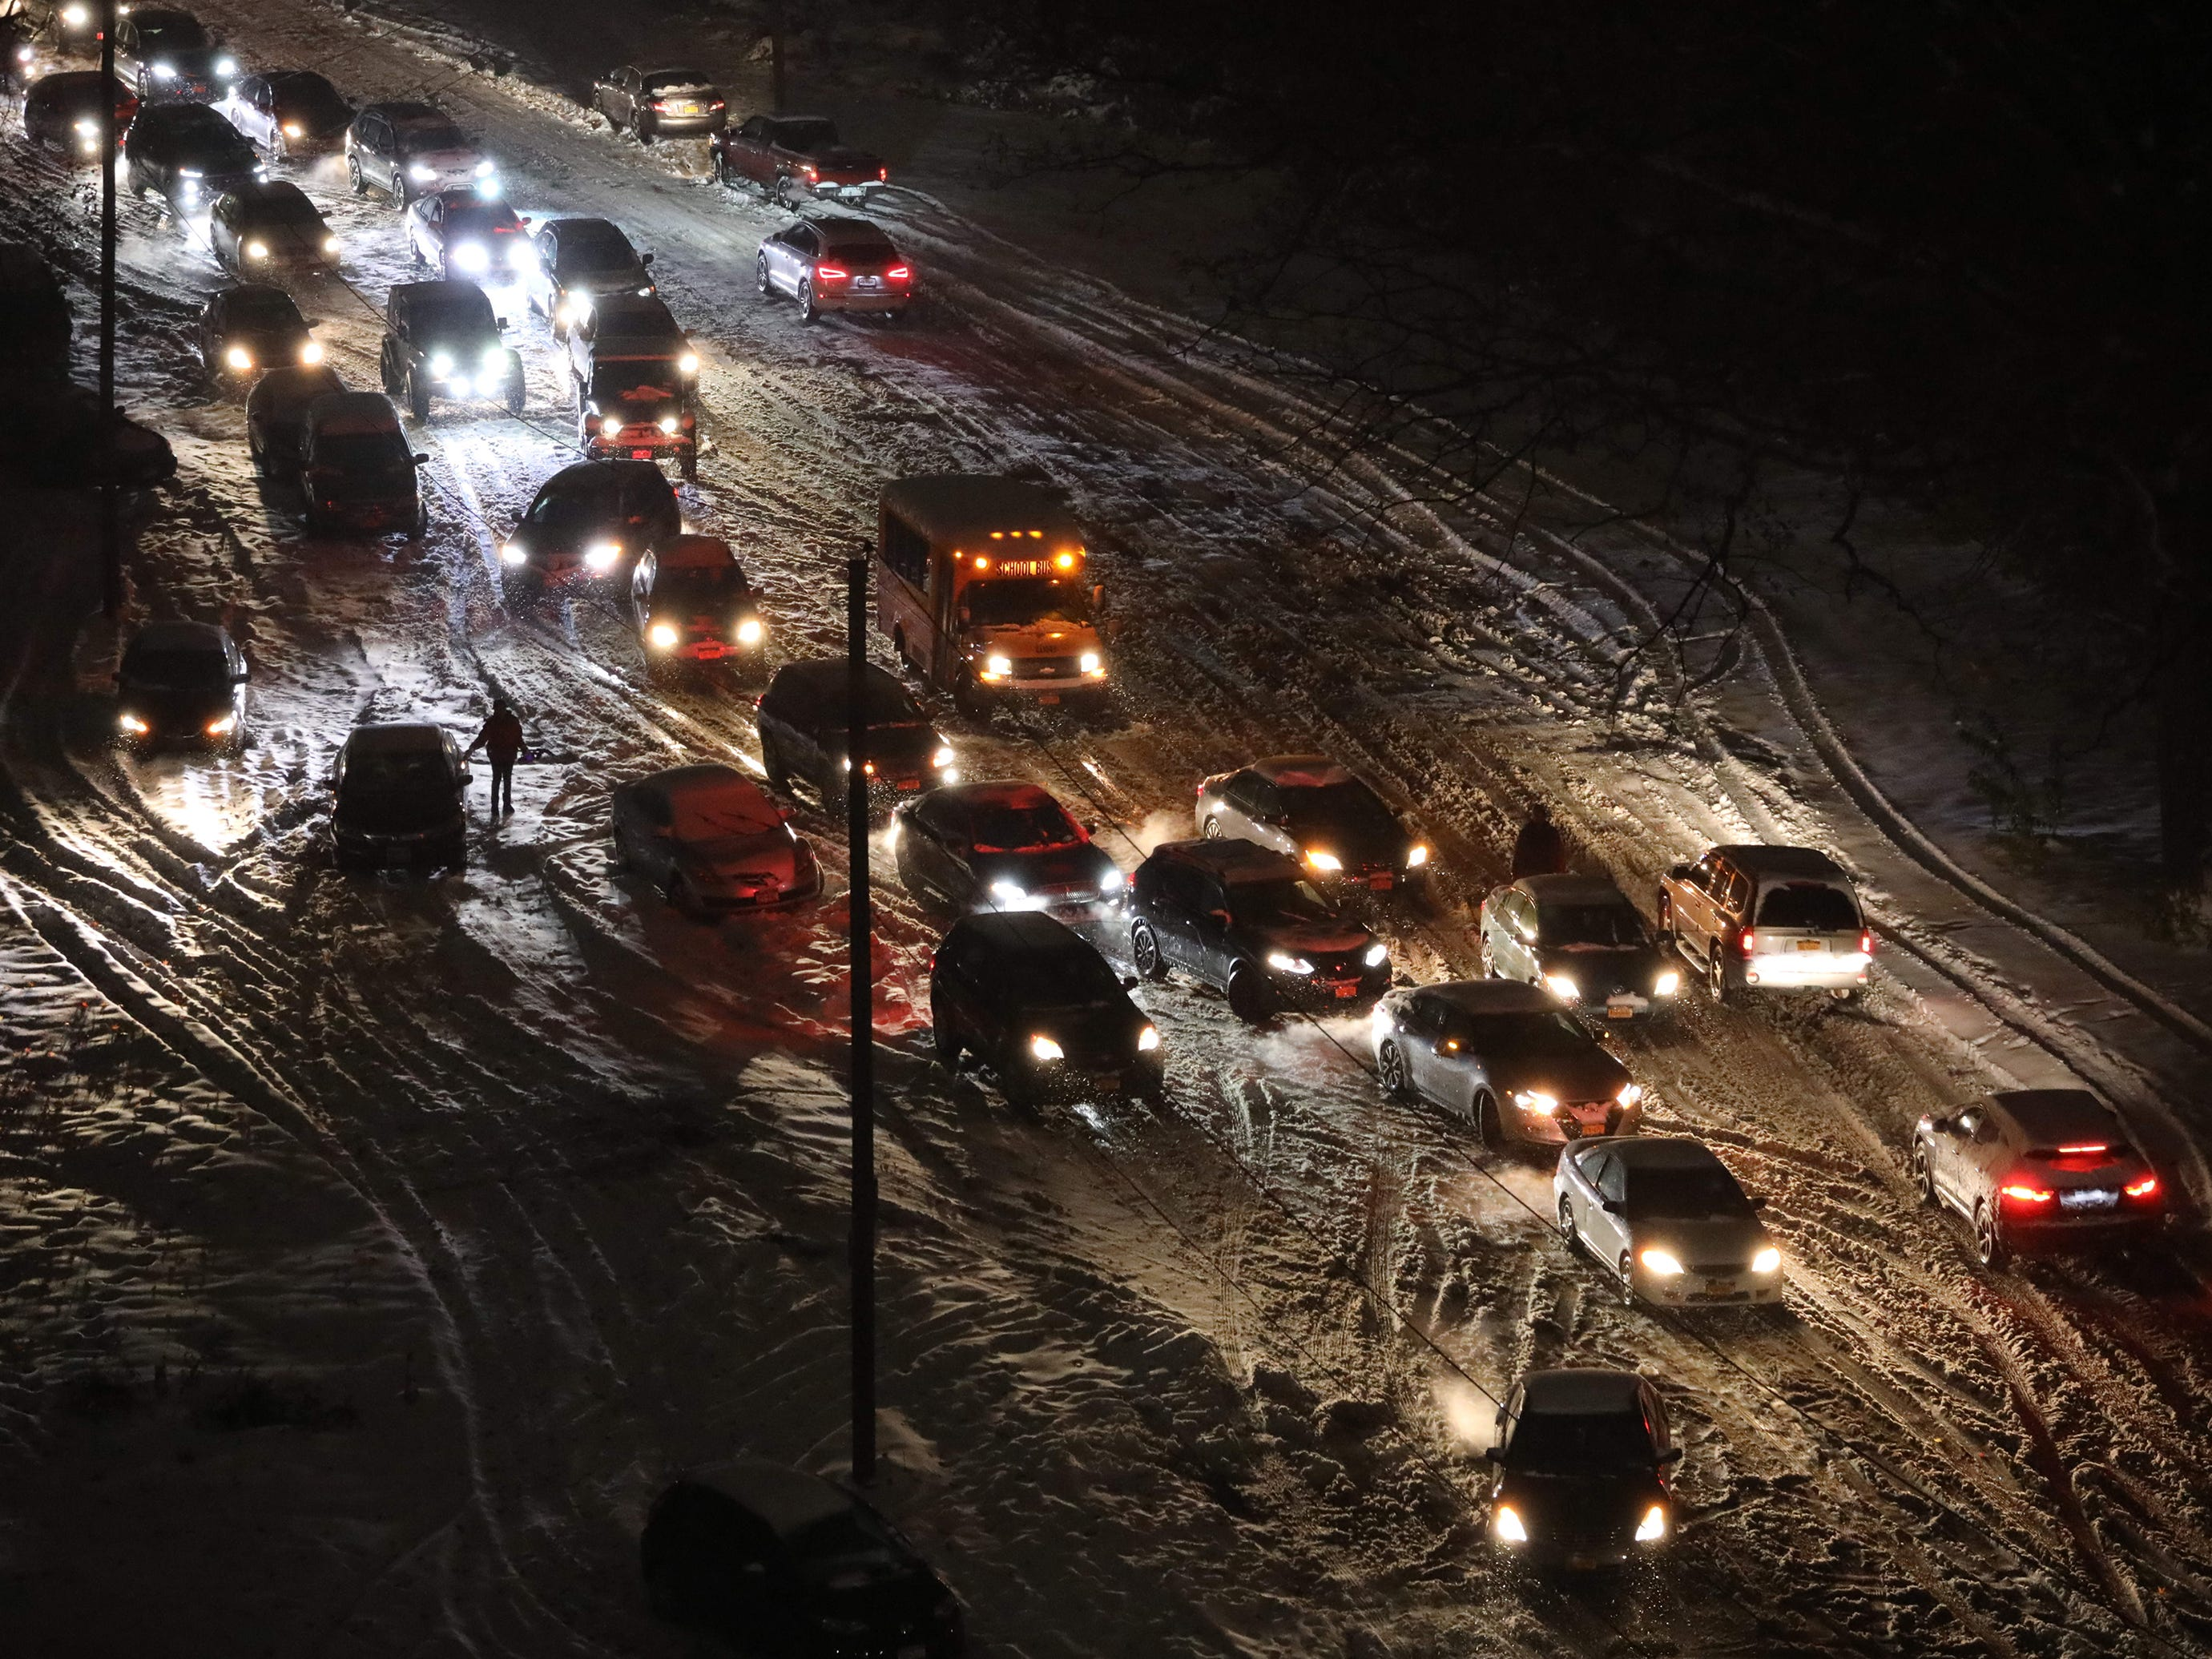 It's a virtual free for all as evening commuters try to navigate icy, snow covered roads in Yonkers, N.Y. on Nov. 15, 2018.